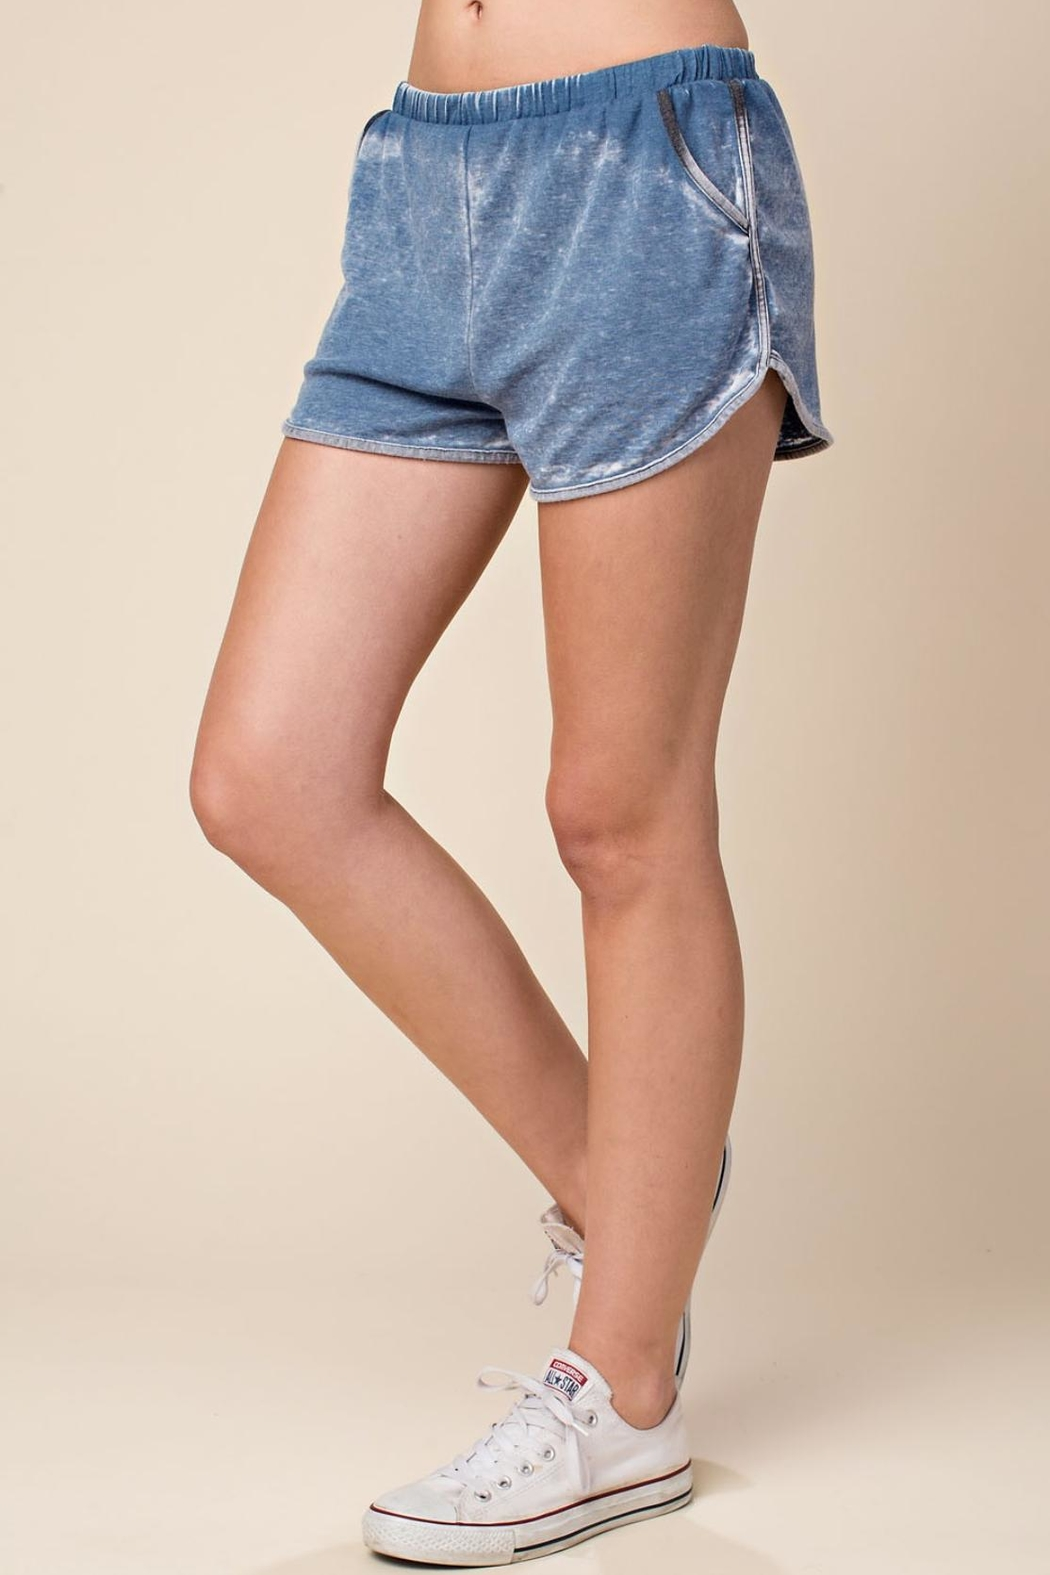 Wild Honey Elastic-Waist Dolphin Mini-Shorts - Front Full Image